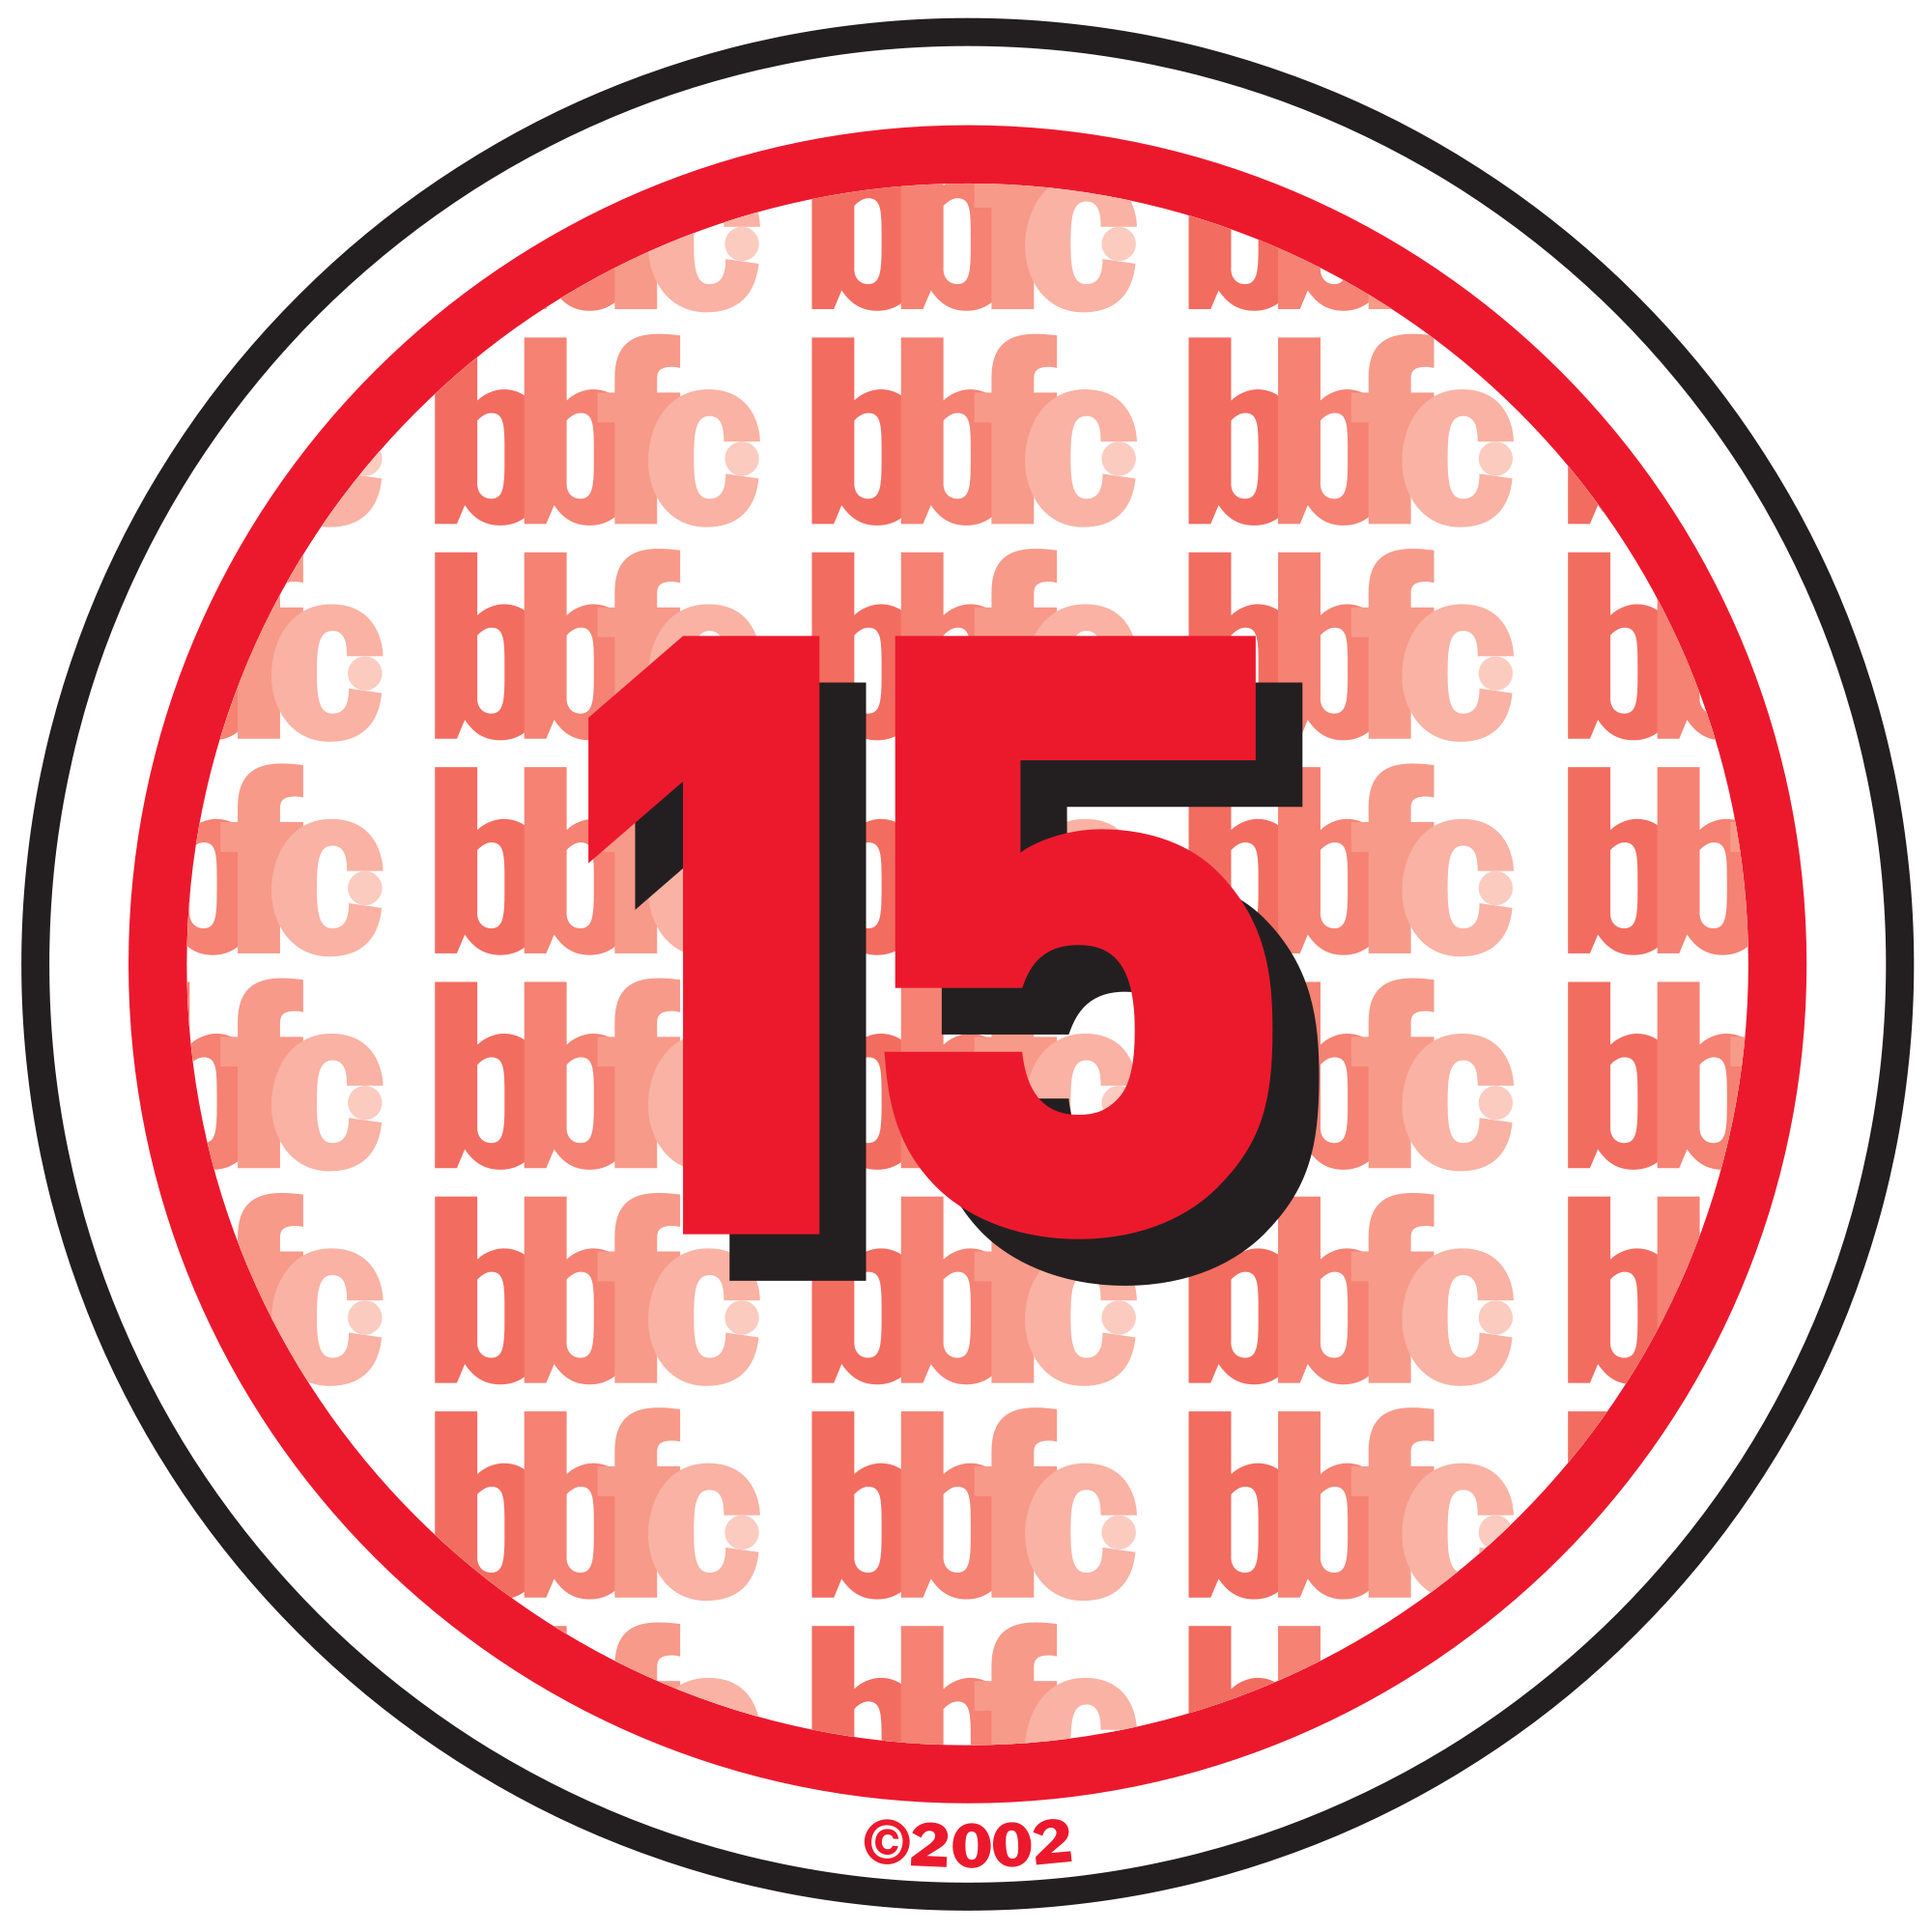 Bbfc 15 rating1.png